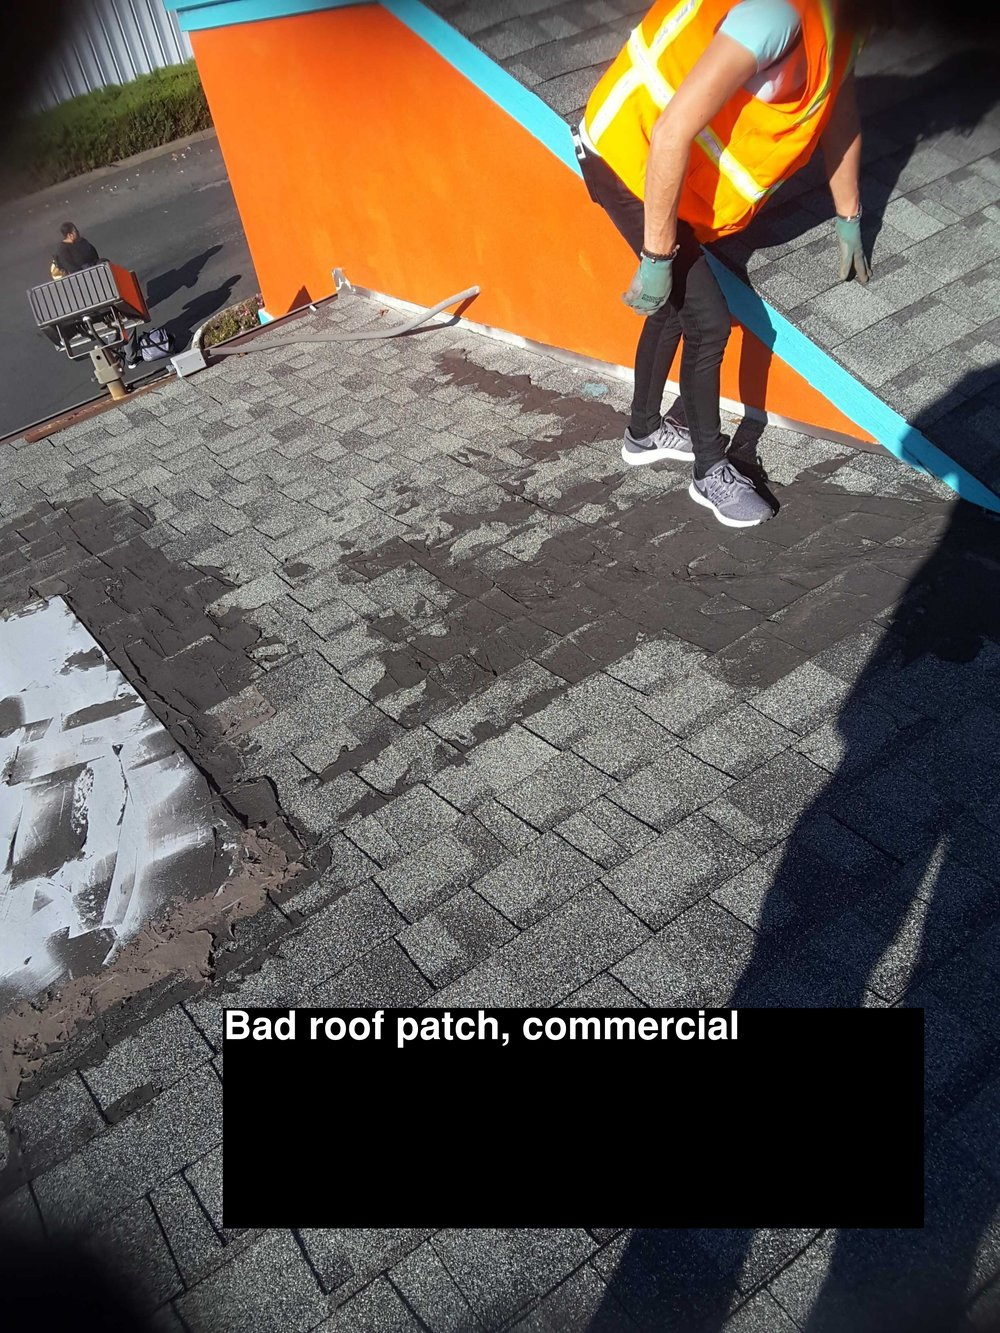 Roof Patch - Some owners will use improper materials